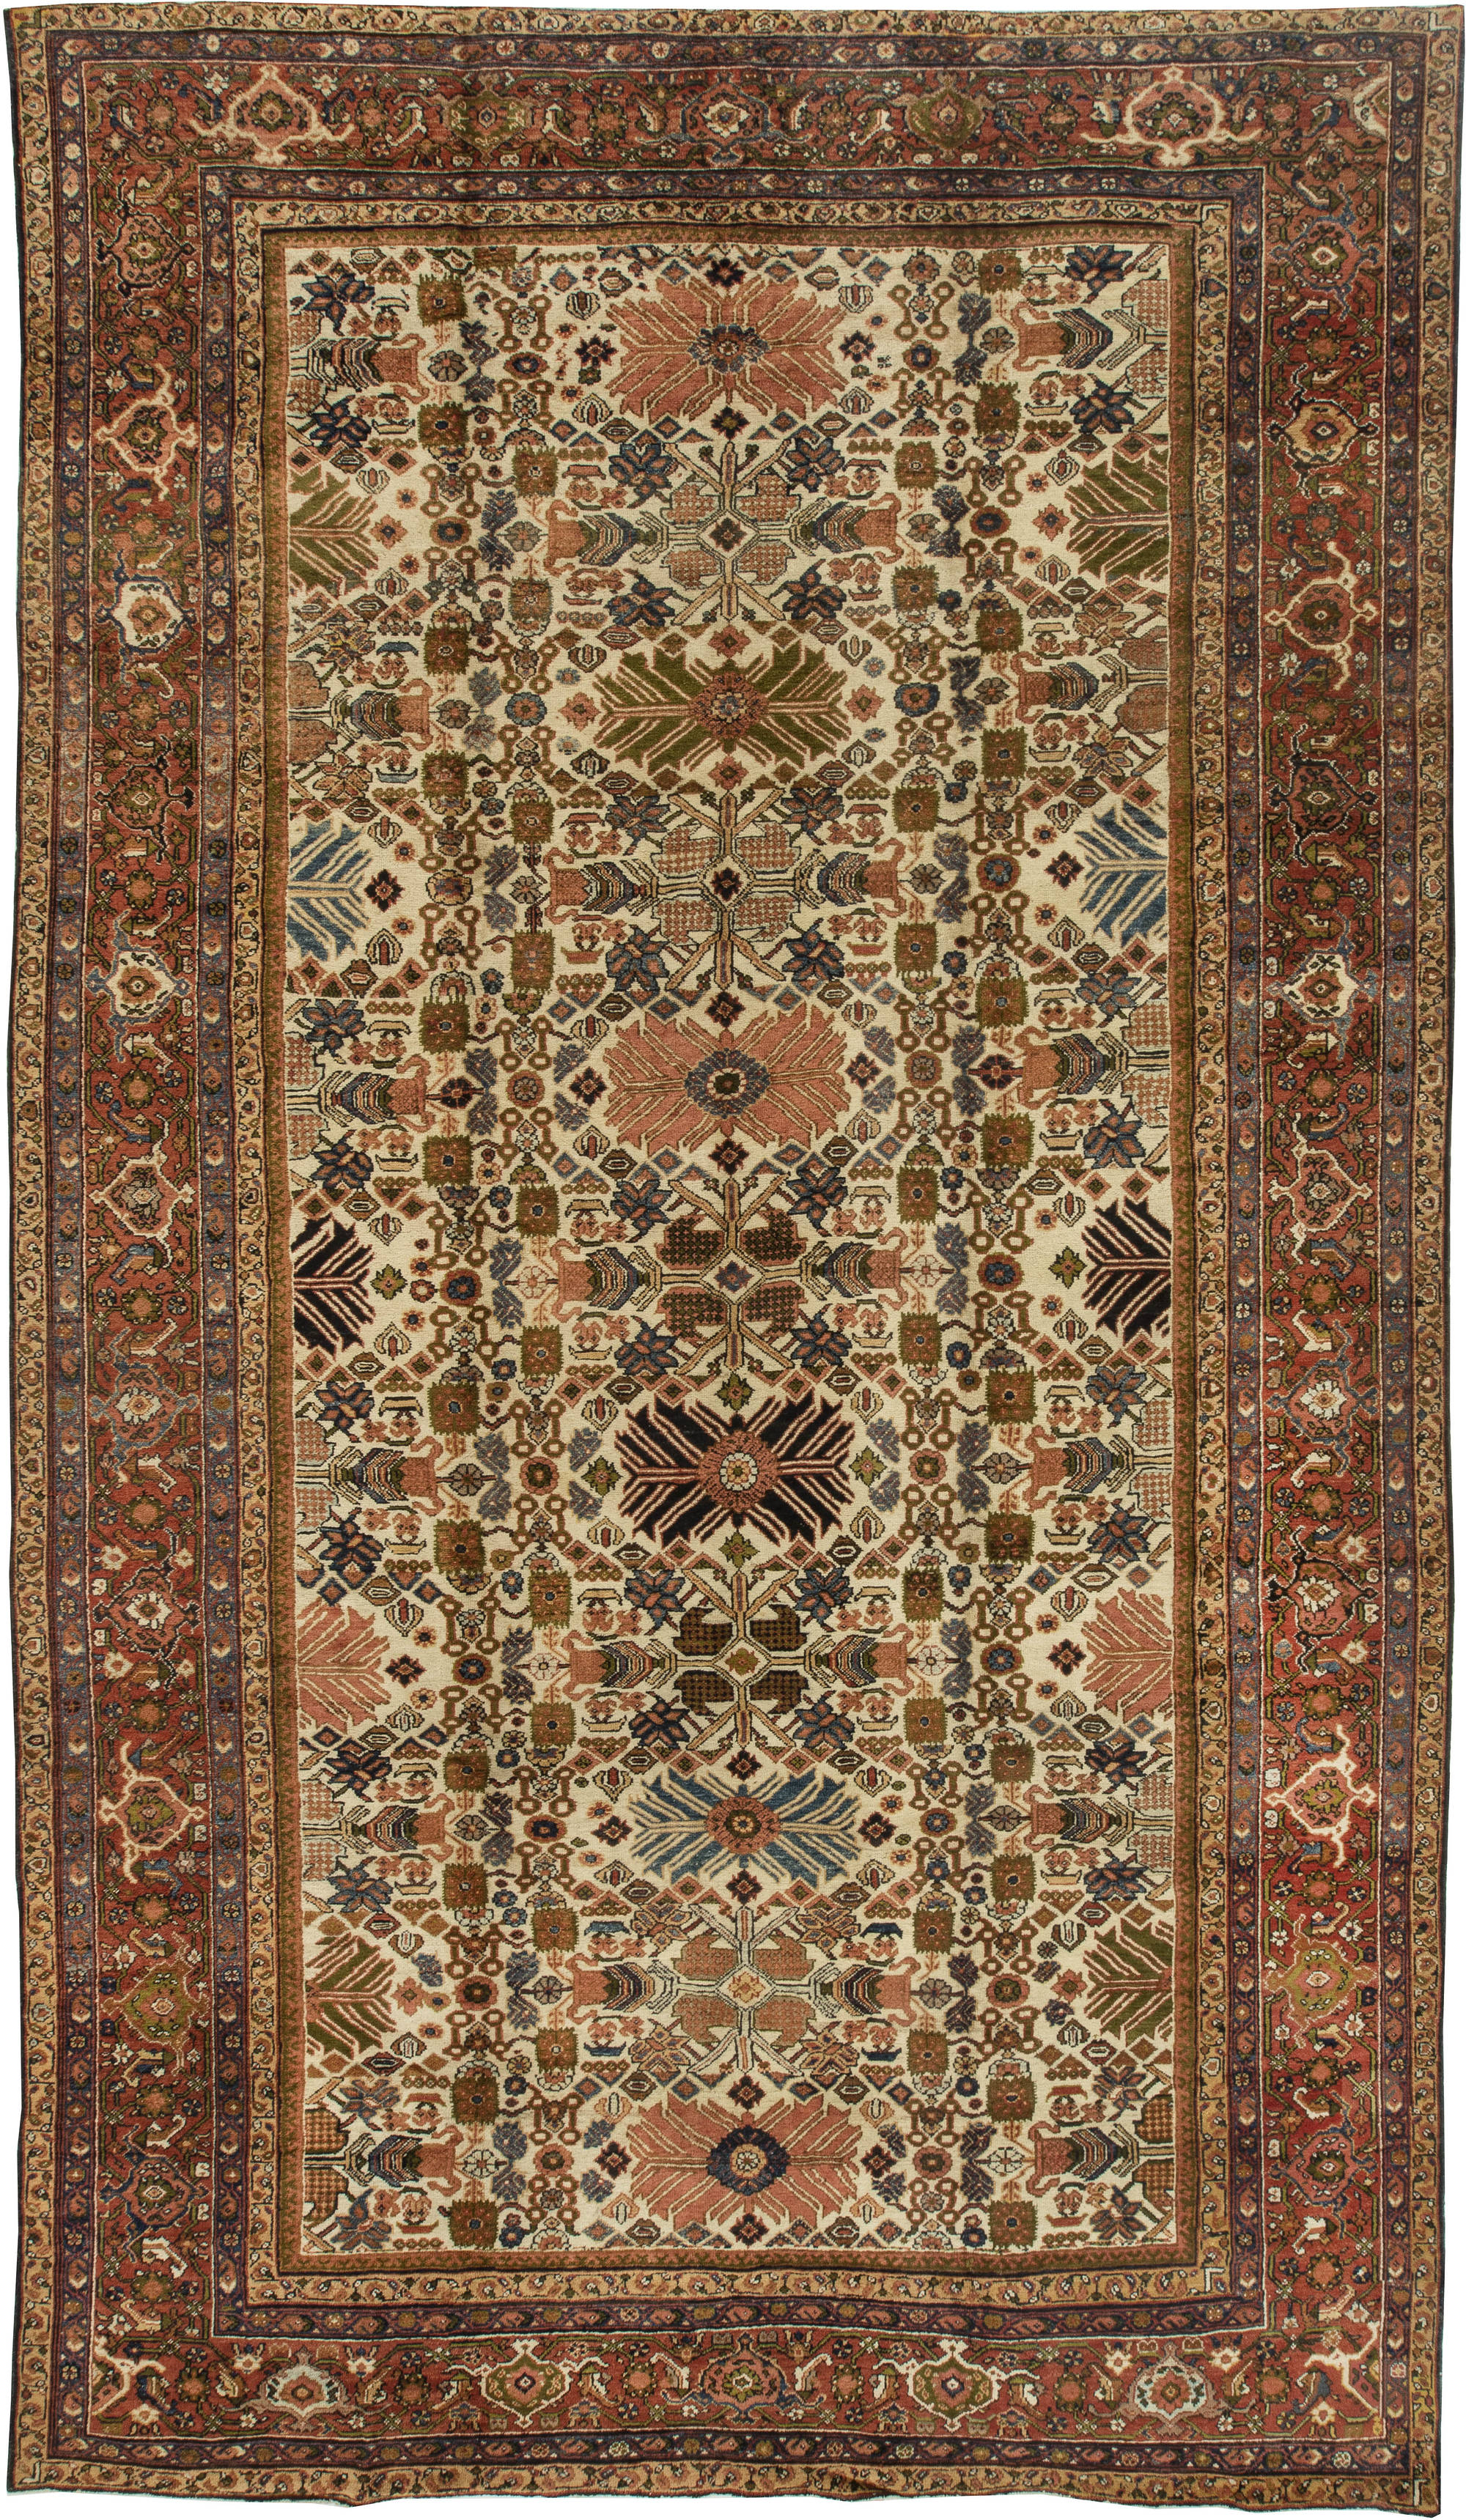 Antique Persian rugs  Antique Oriental rugs  Persian Carpets in NYC